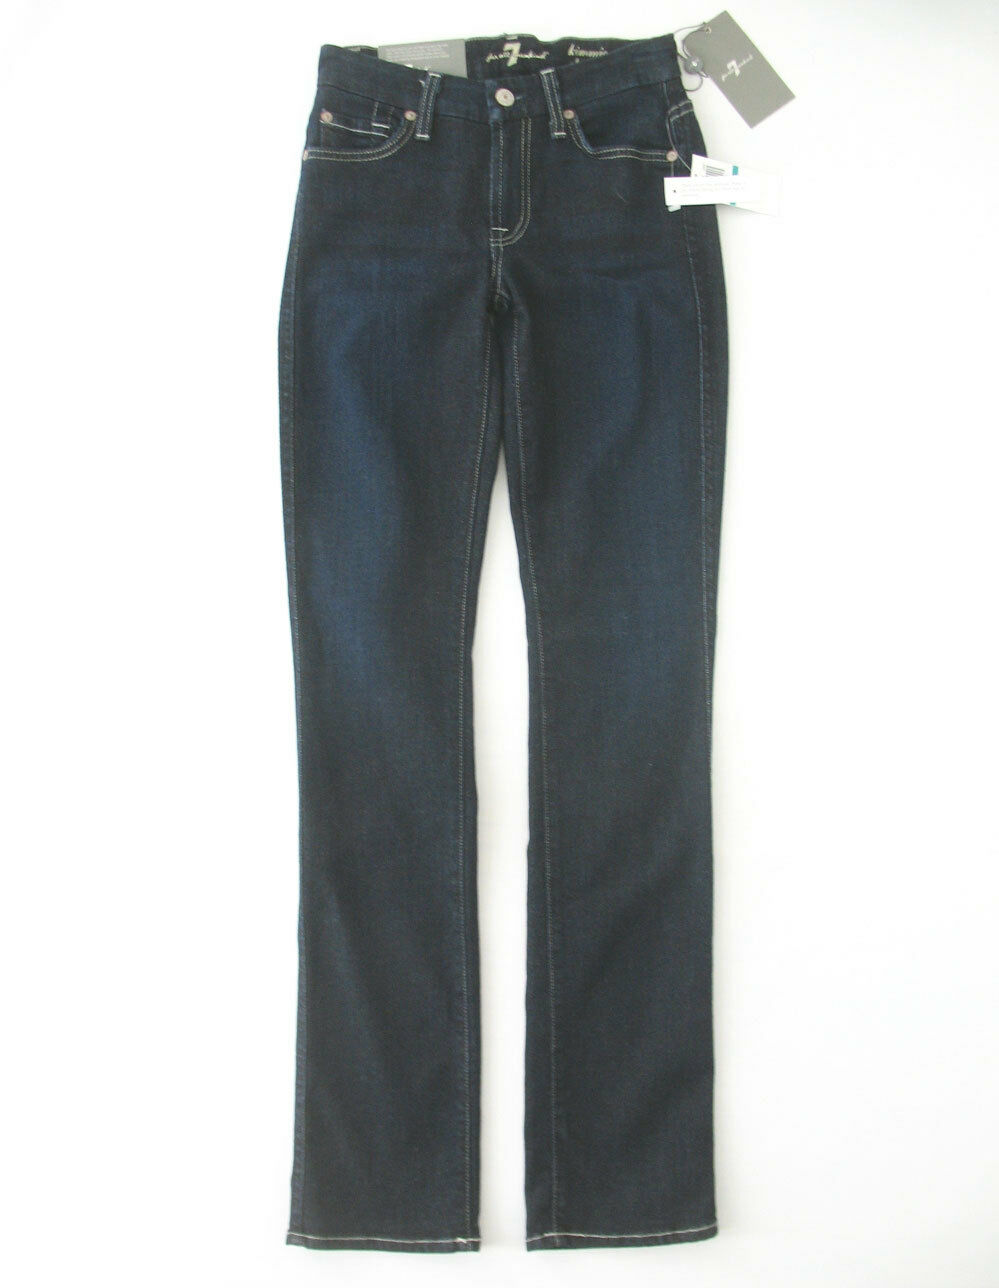 7 For All Mankind Kimmie Gerades Bein Jeans Wüste Nite 24 9445 Bm12